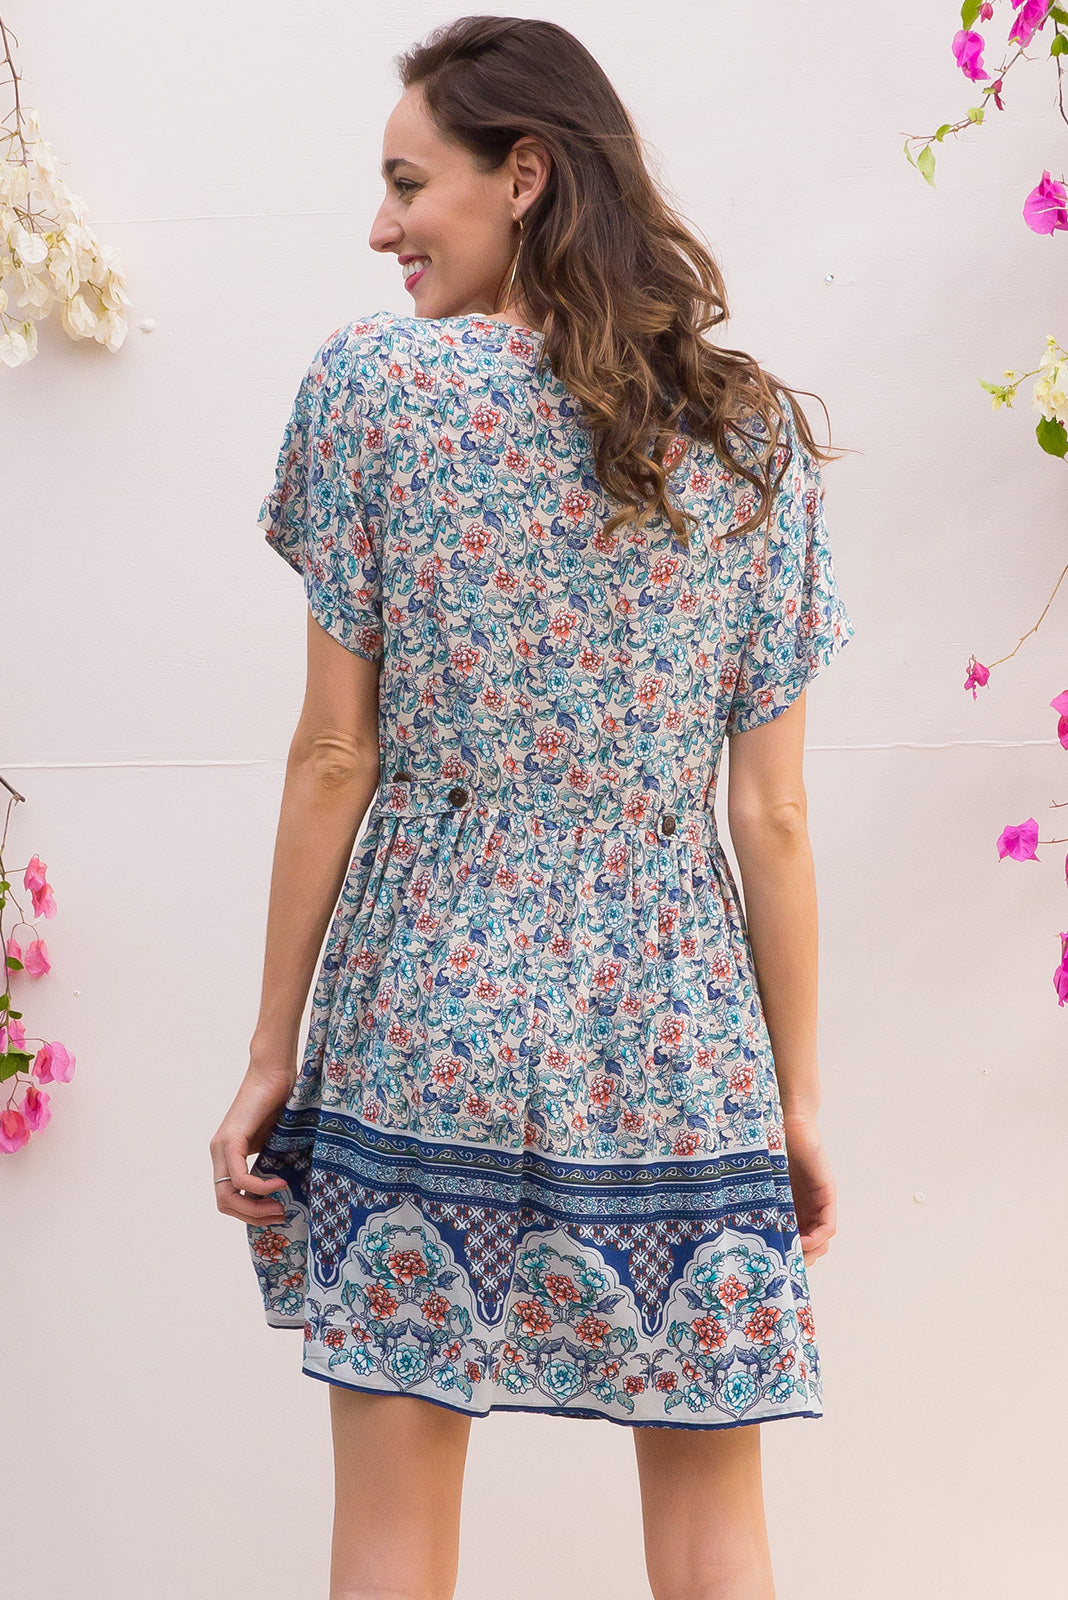 Blue Moon Bliss Dress has a easy to wear relaxed fit and features cuffed sleeves, button tabs at the waist and comes in a off white and dusty blue border print on woven rayon